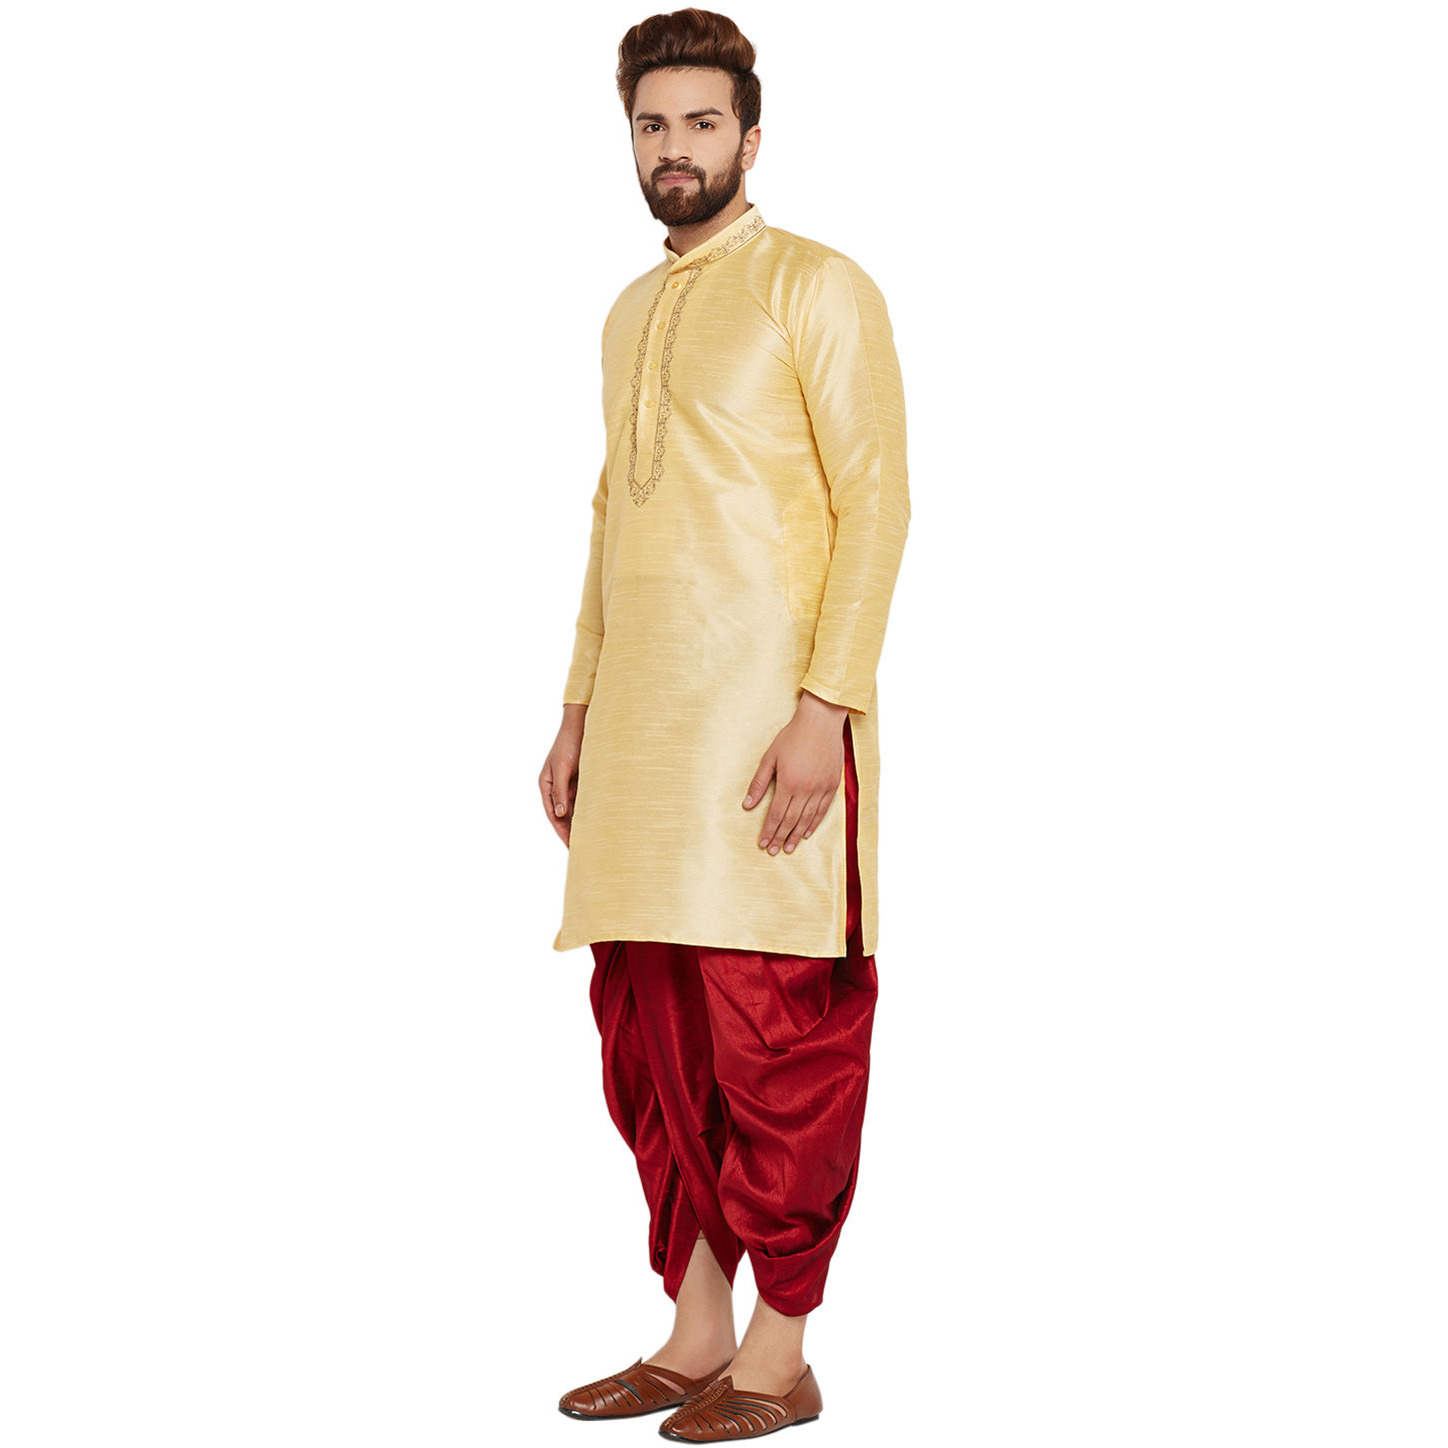 Sojanya (Since 1958)B Men's Traditional Ethnic Wear Dupion Silk Gold and Royal Blue Embroidery Dhoti Kurta Set Regular Fit